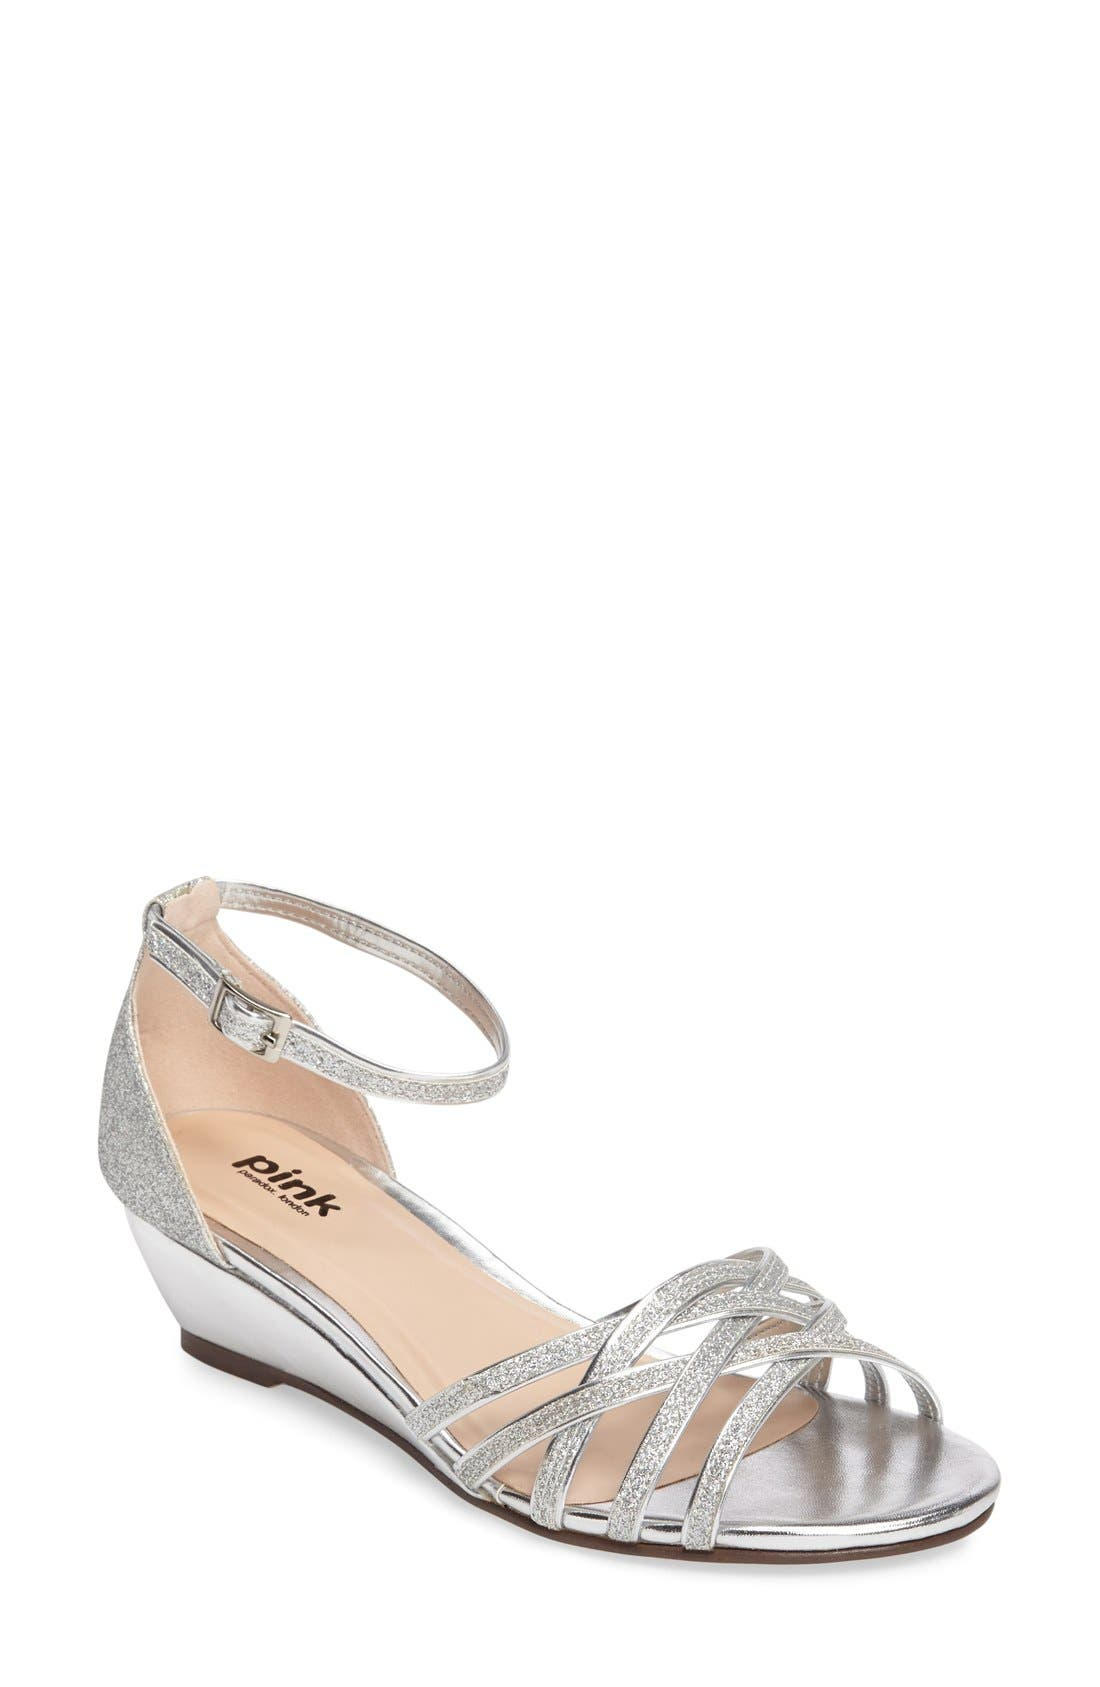 Avery Wedge Sandal,                         Main,                         color, SILVER